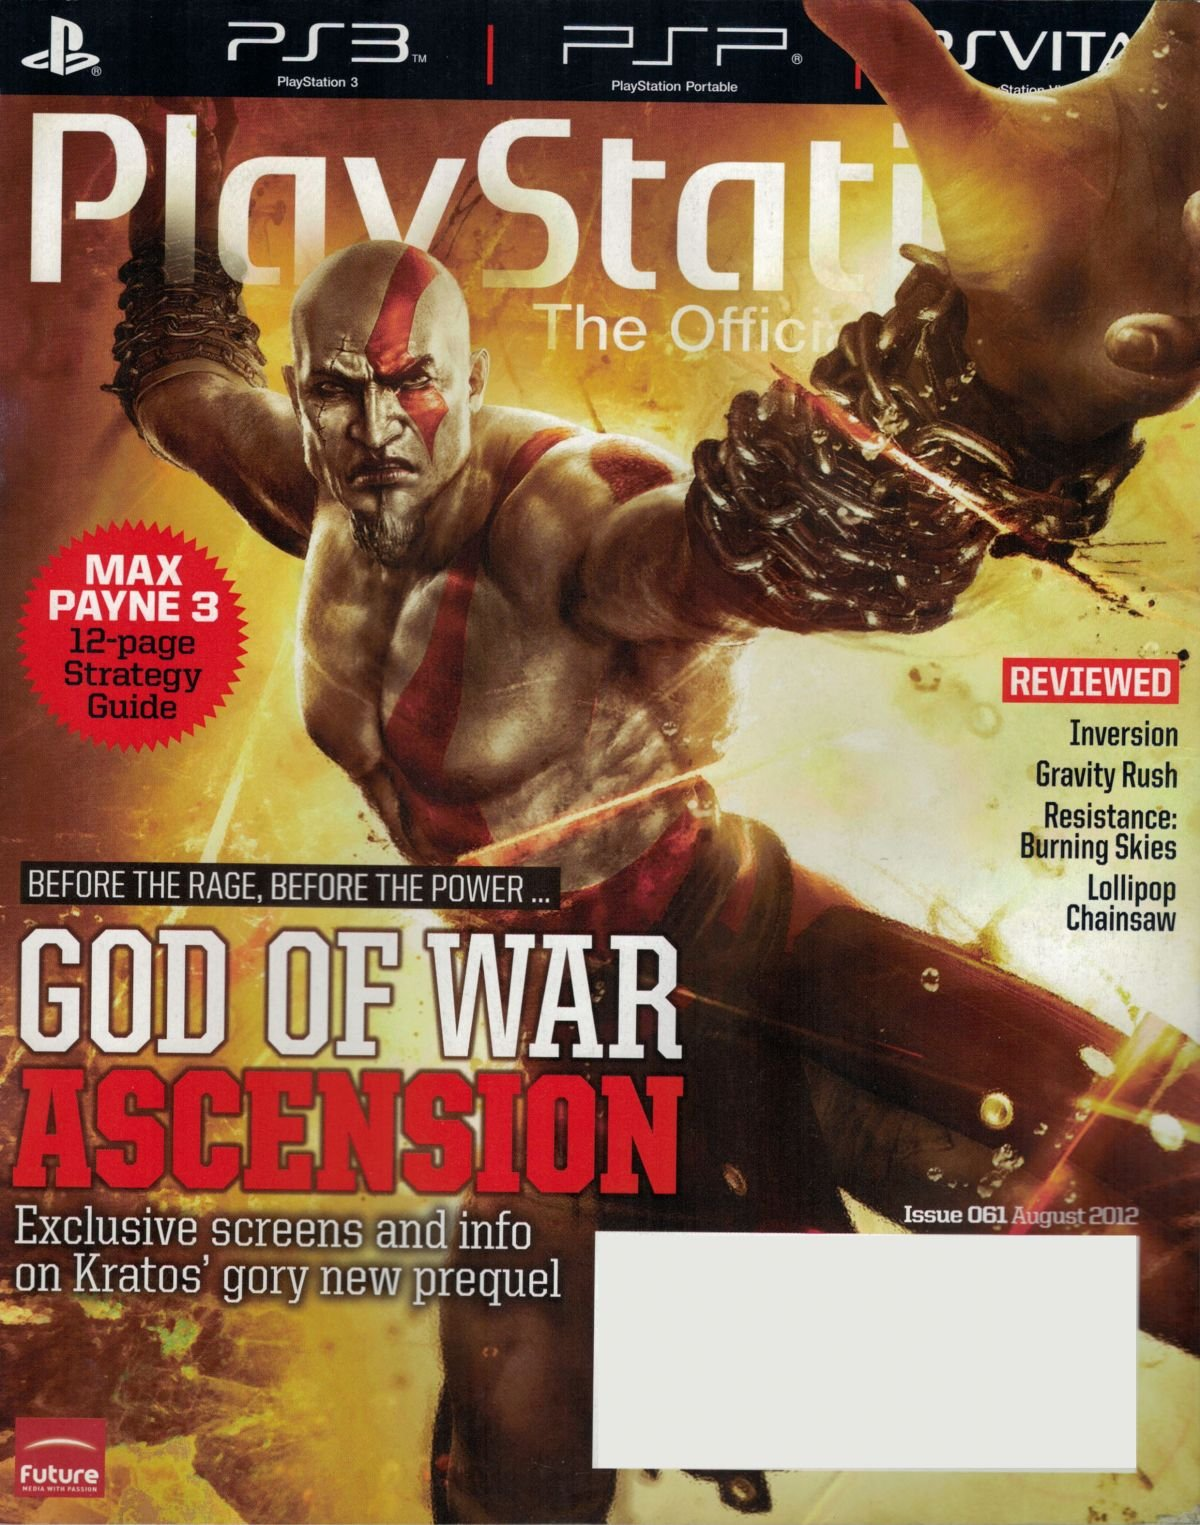 PlayStation The Official Magazine (USA) Issue 061 August 2012